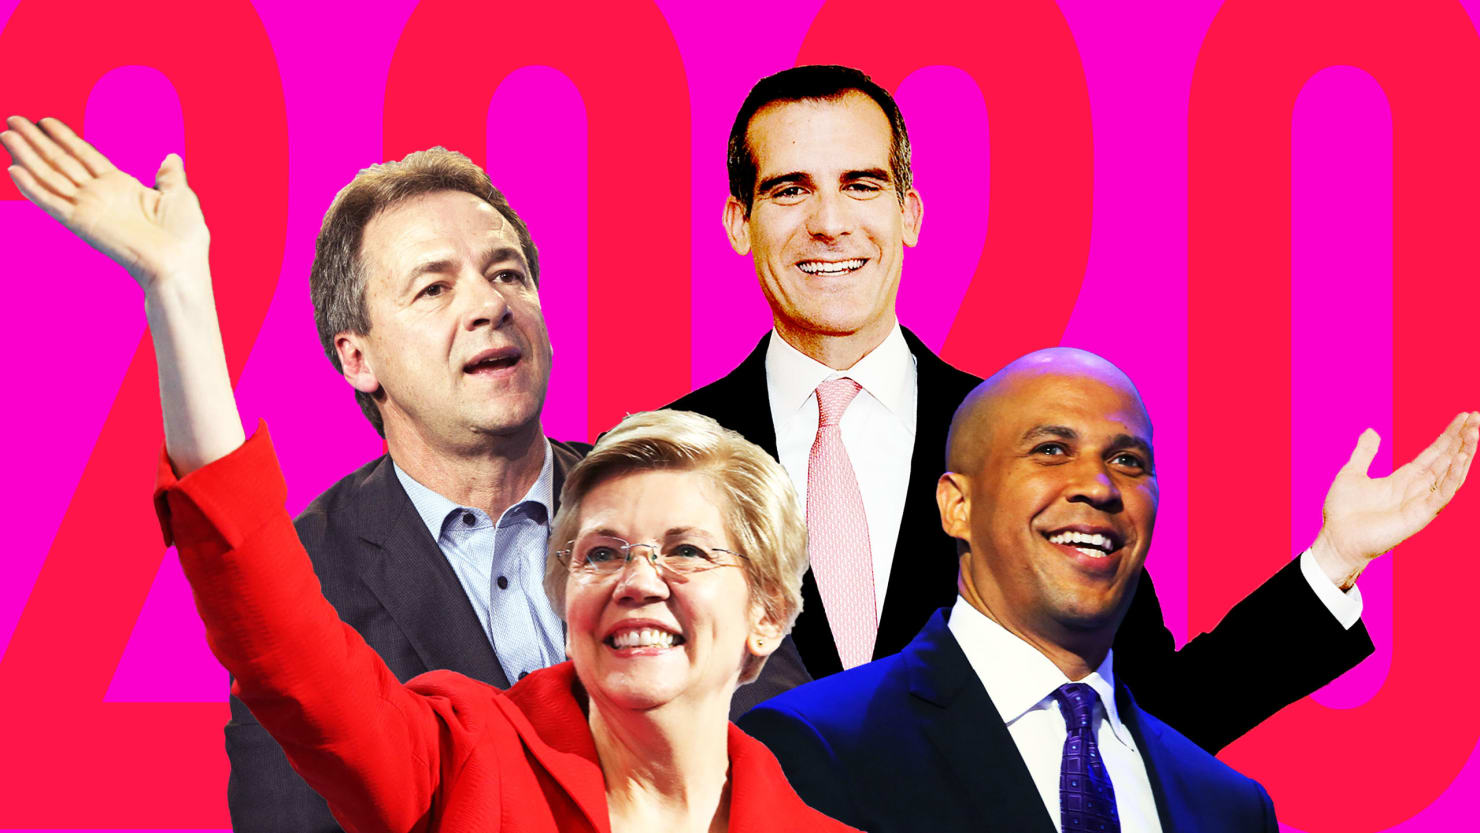 the 2020 dem class is already frantically making moves behind the scenes